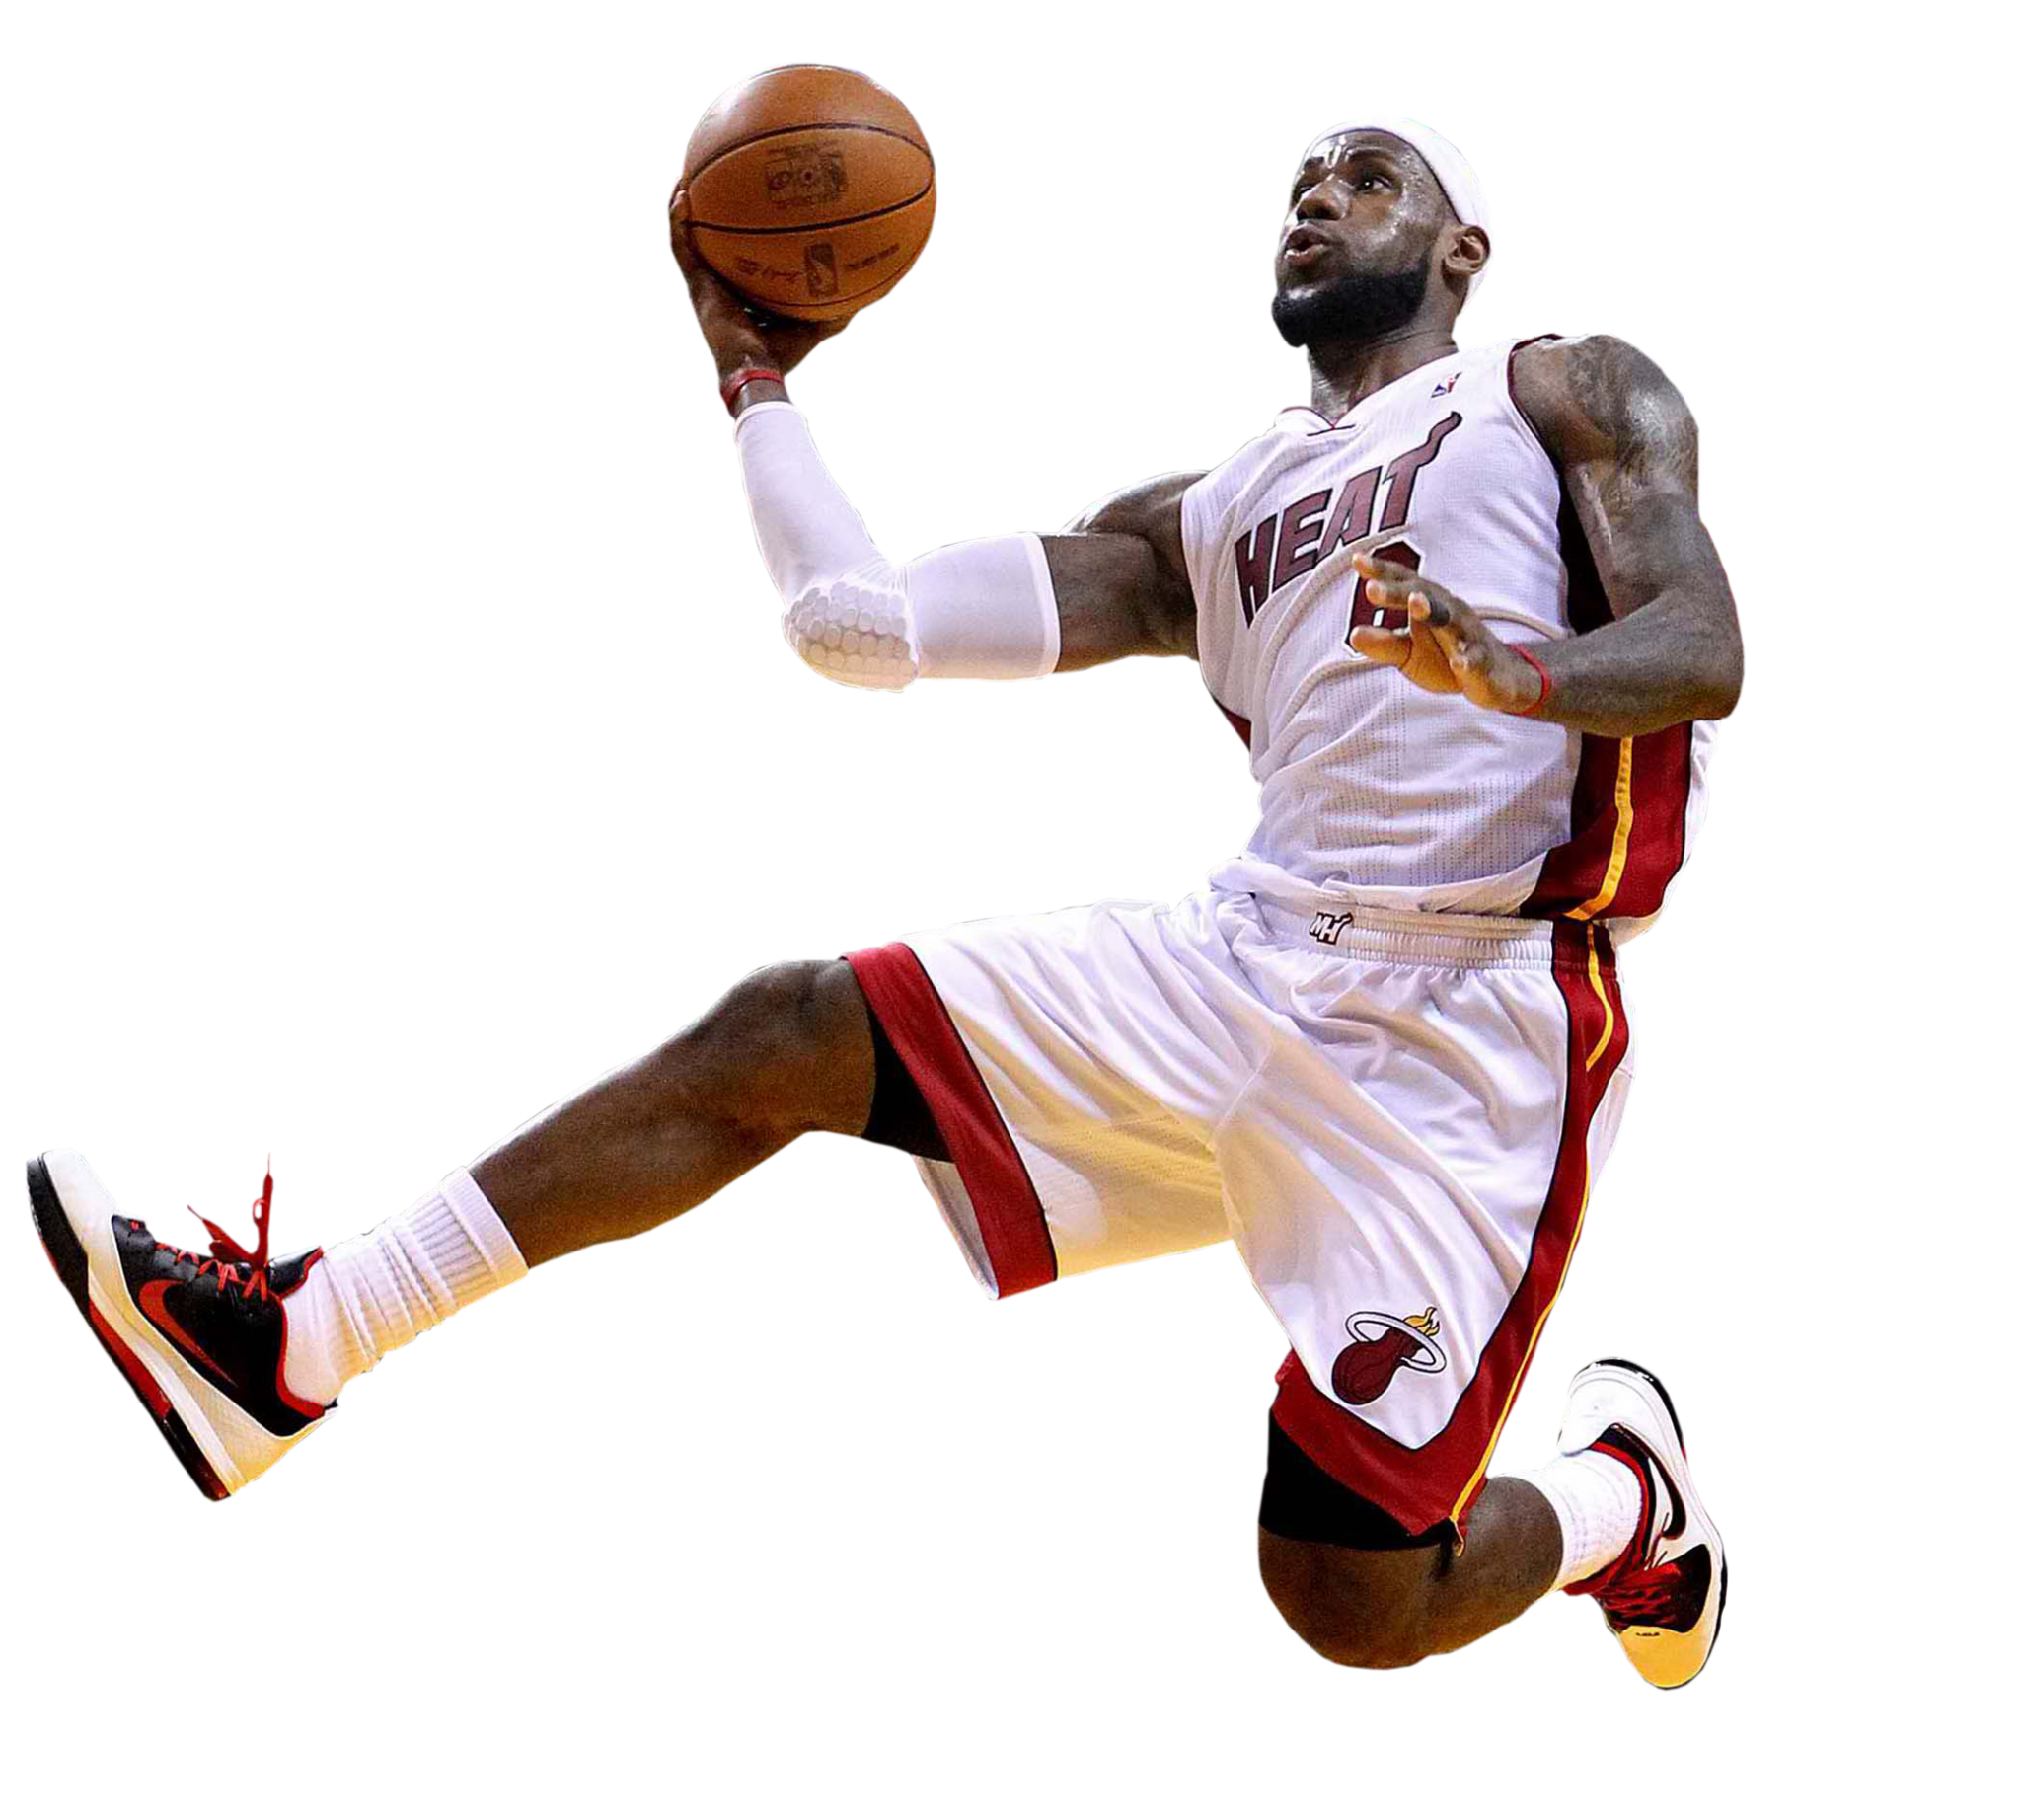 Download Lebron James Picture Hq Png Image In Different Resolution Freepngimg